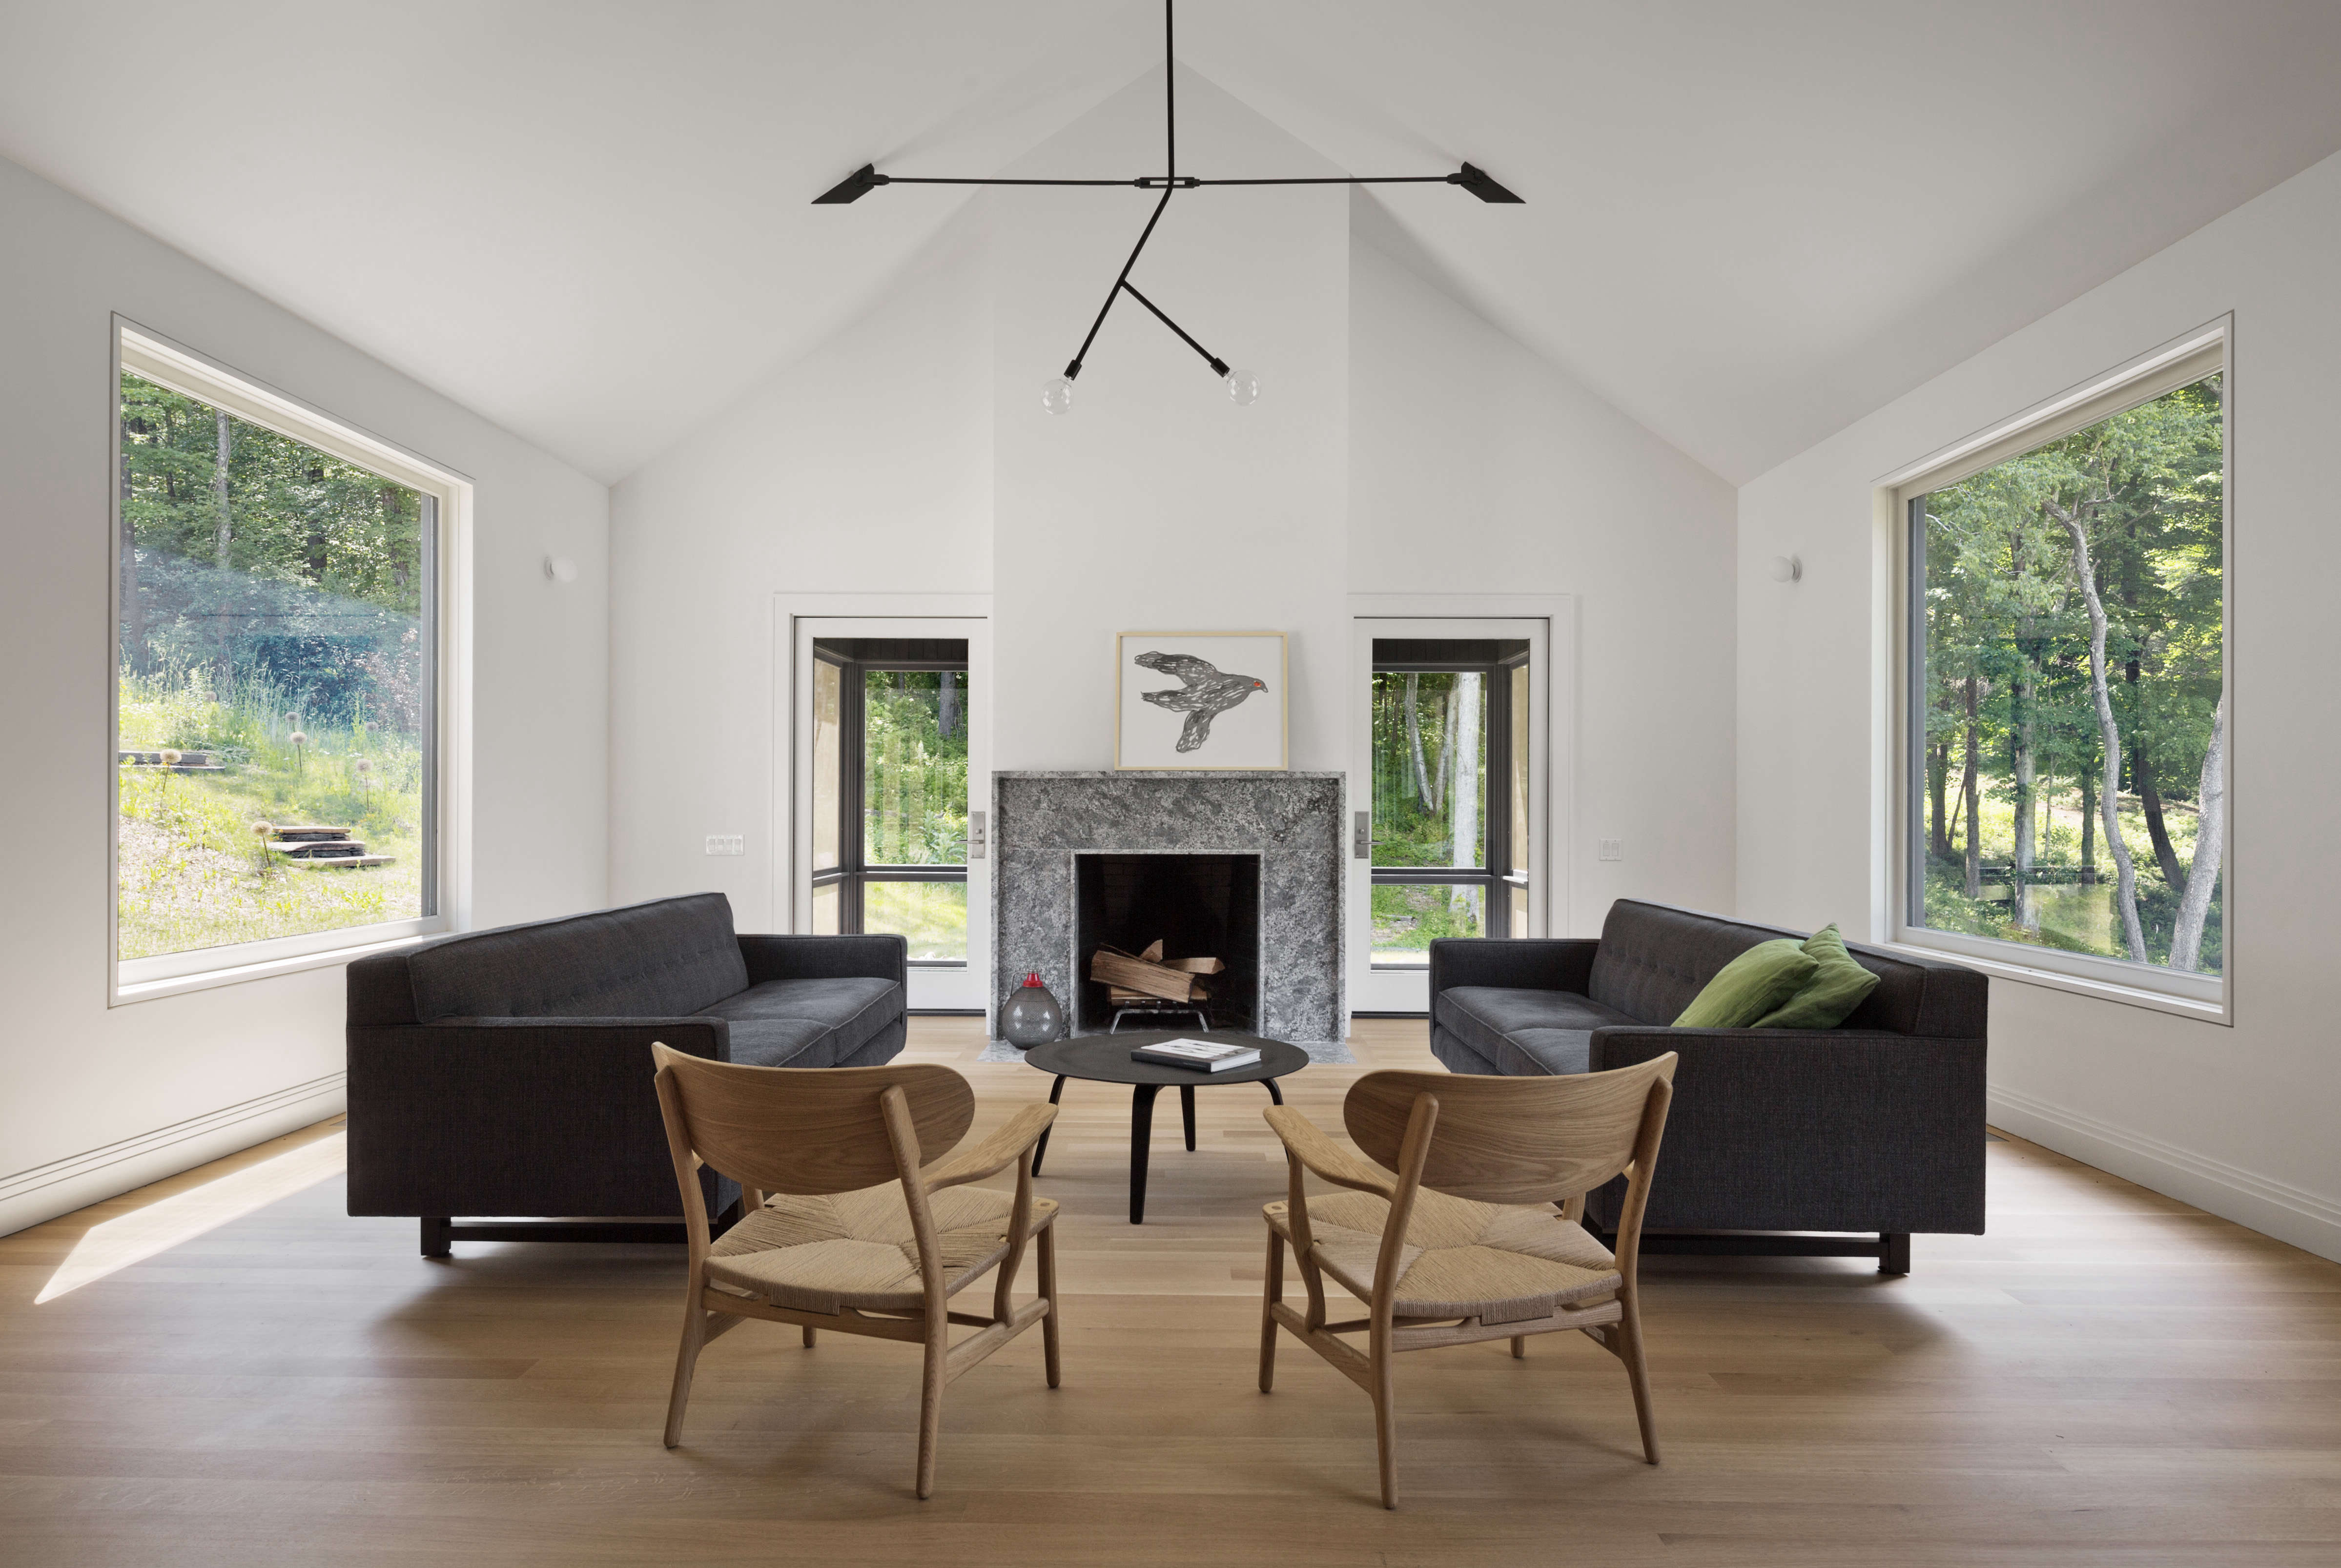 peaked ceiling living room at undermountain, a barn style house in the berkshir 12